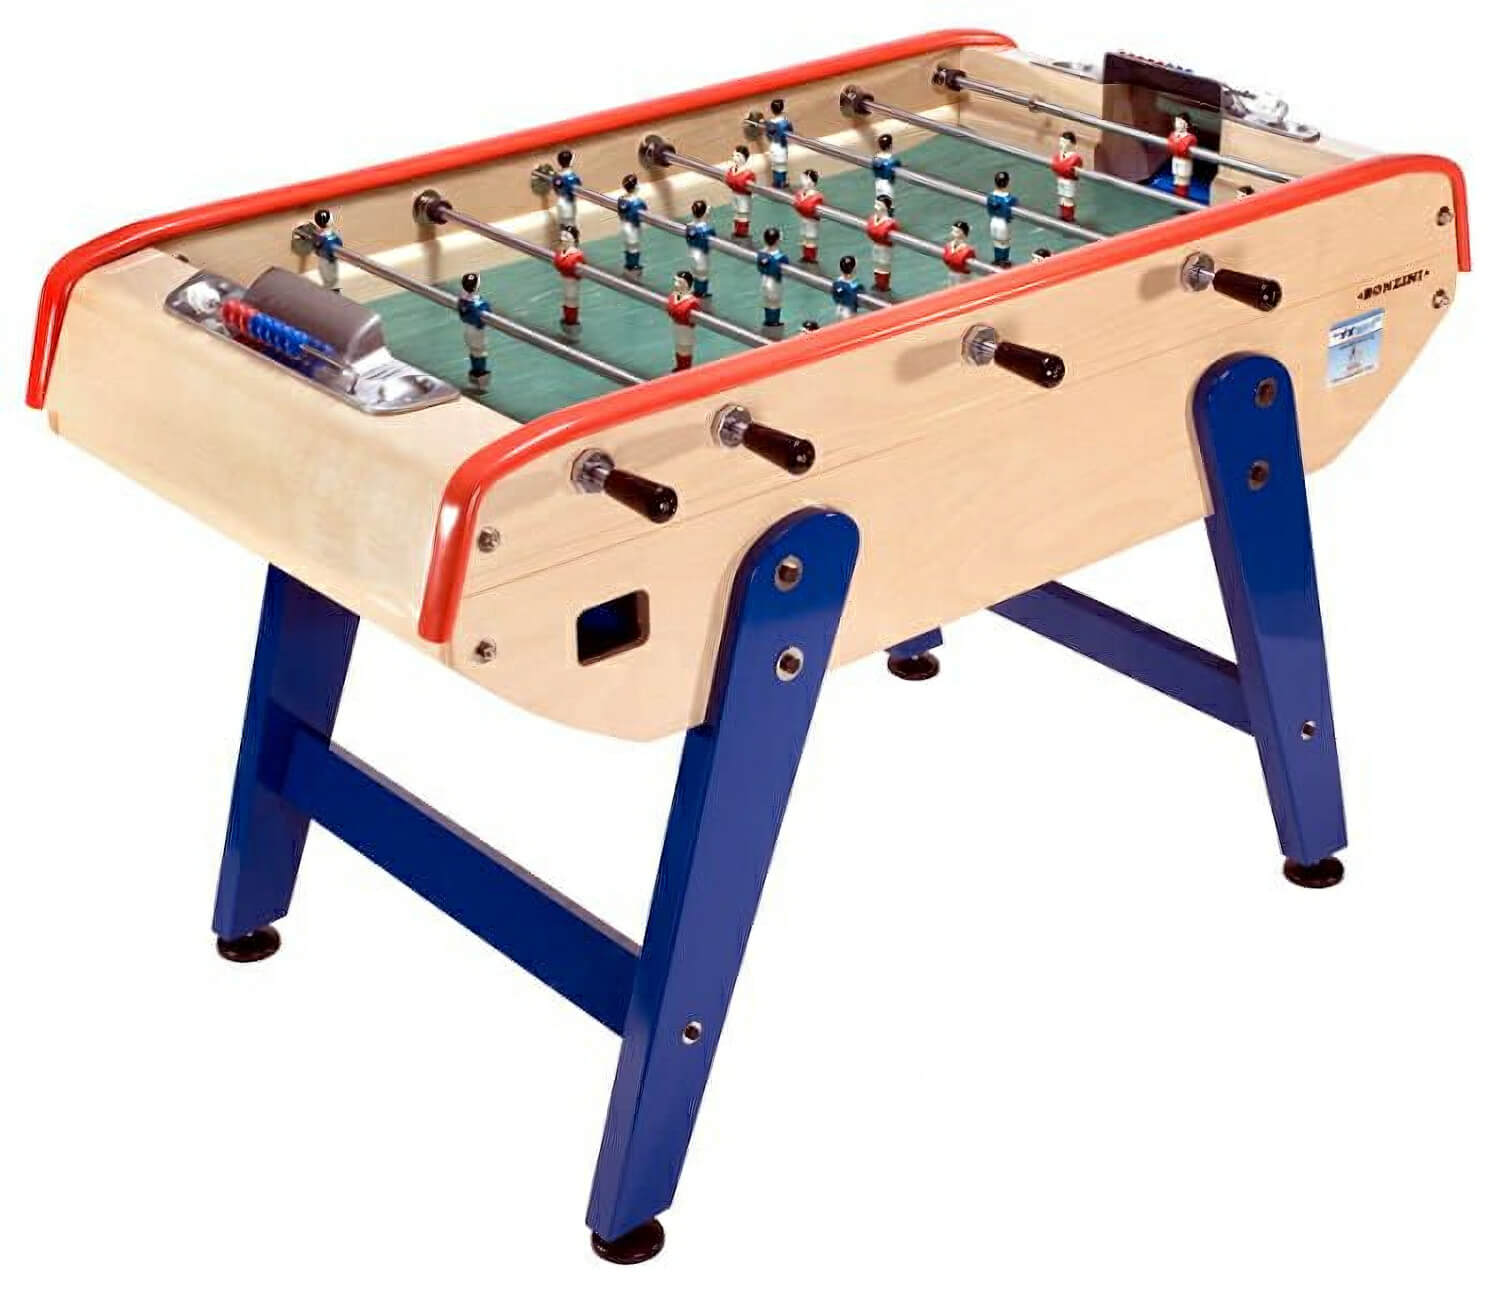 Bonzini B90 ITSF Competition Football Table : Liberty Games